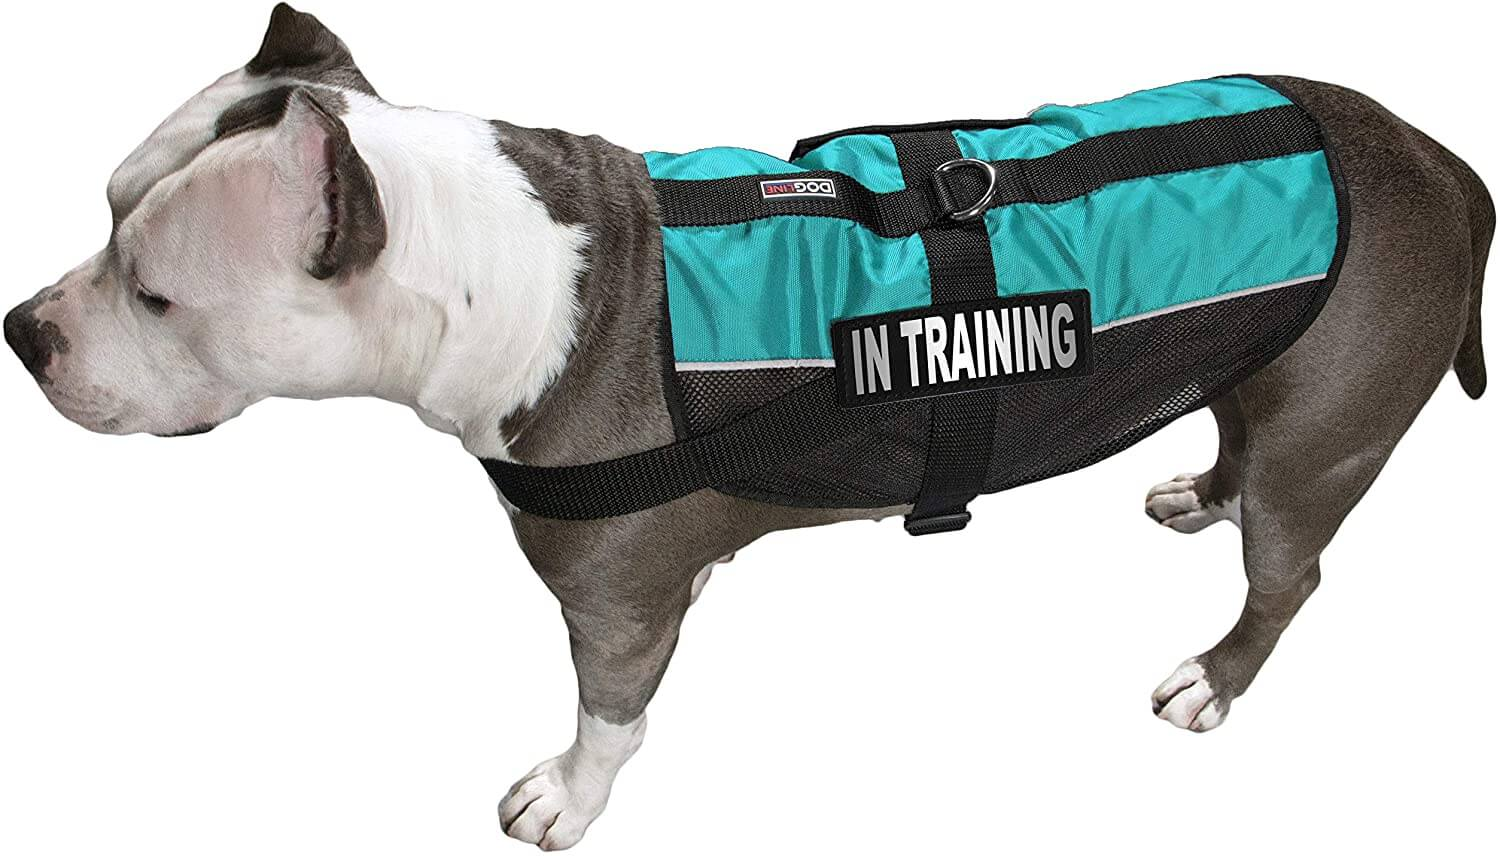 dog training vest with in training label